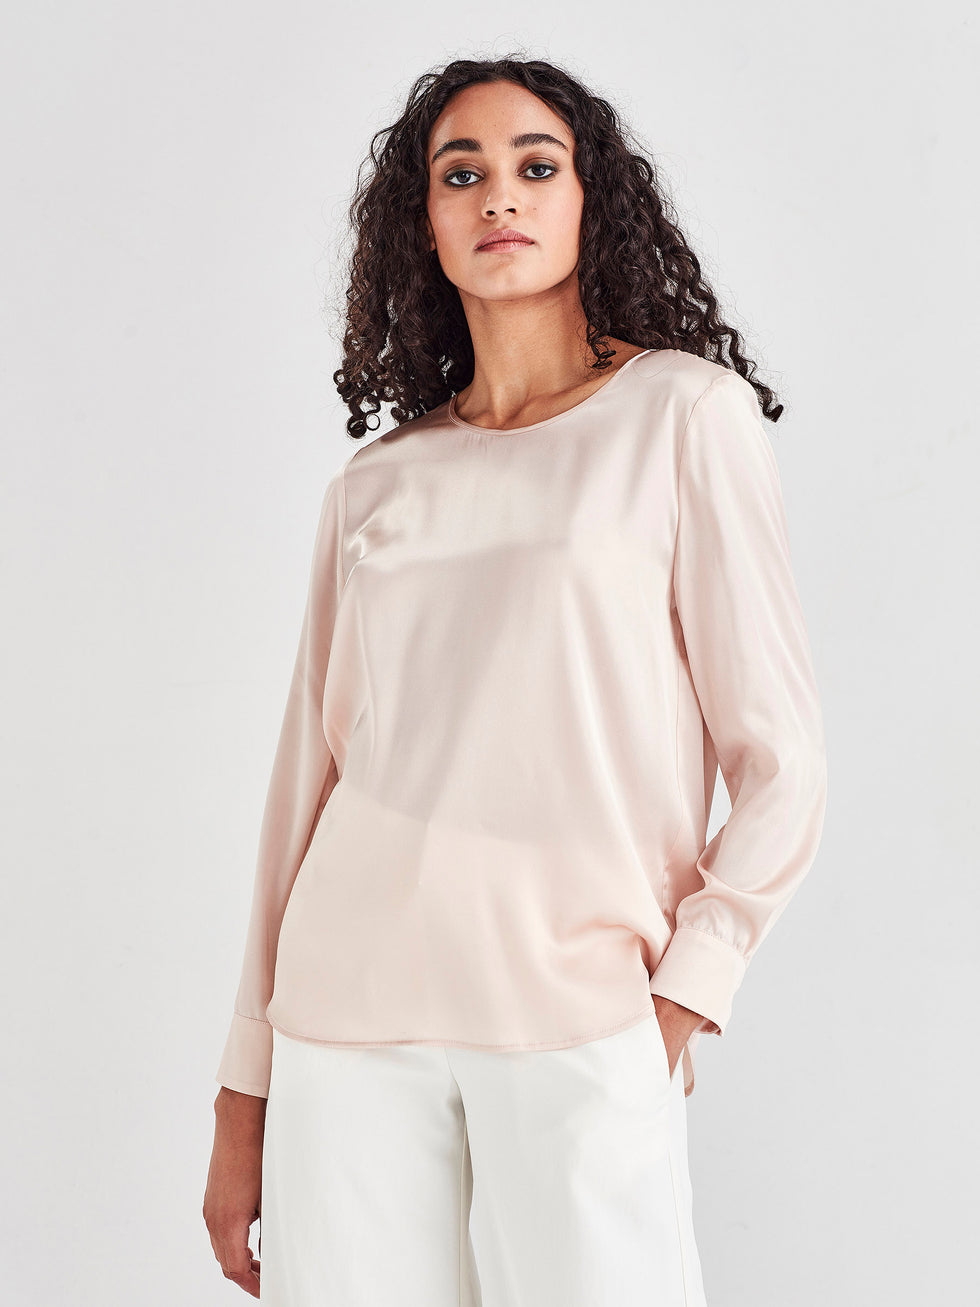 Noelene Blouse (Light Silk Satin) Talc